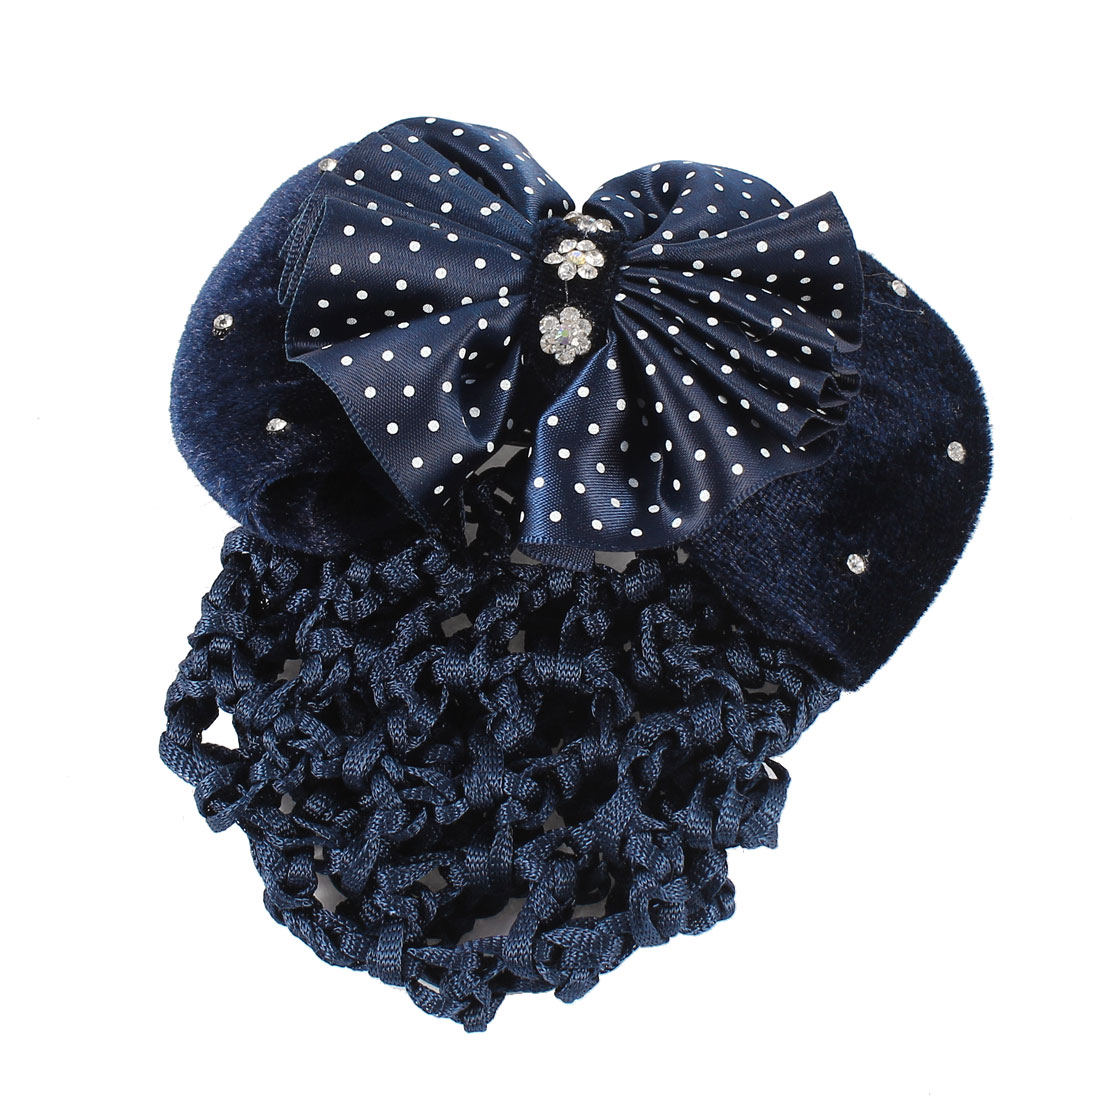 Hairstyle Dark Blue Polyester Bowknot Barrette Hair Clip w Black Snood Net